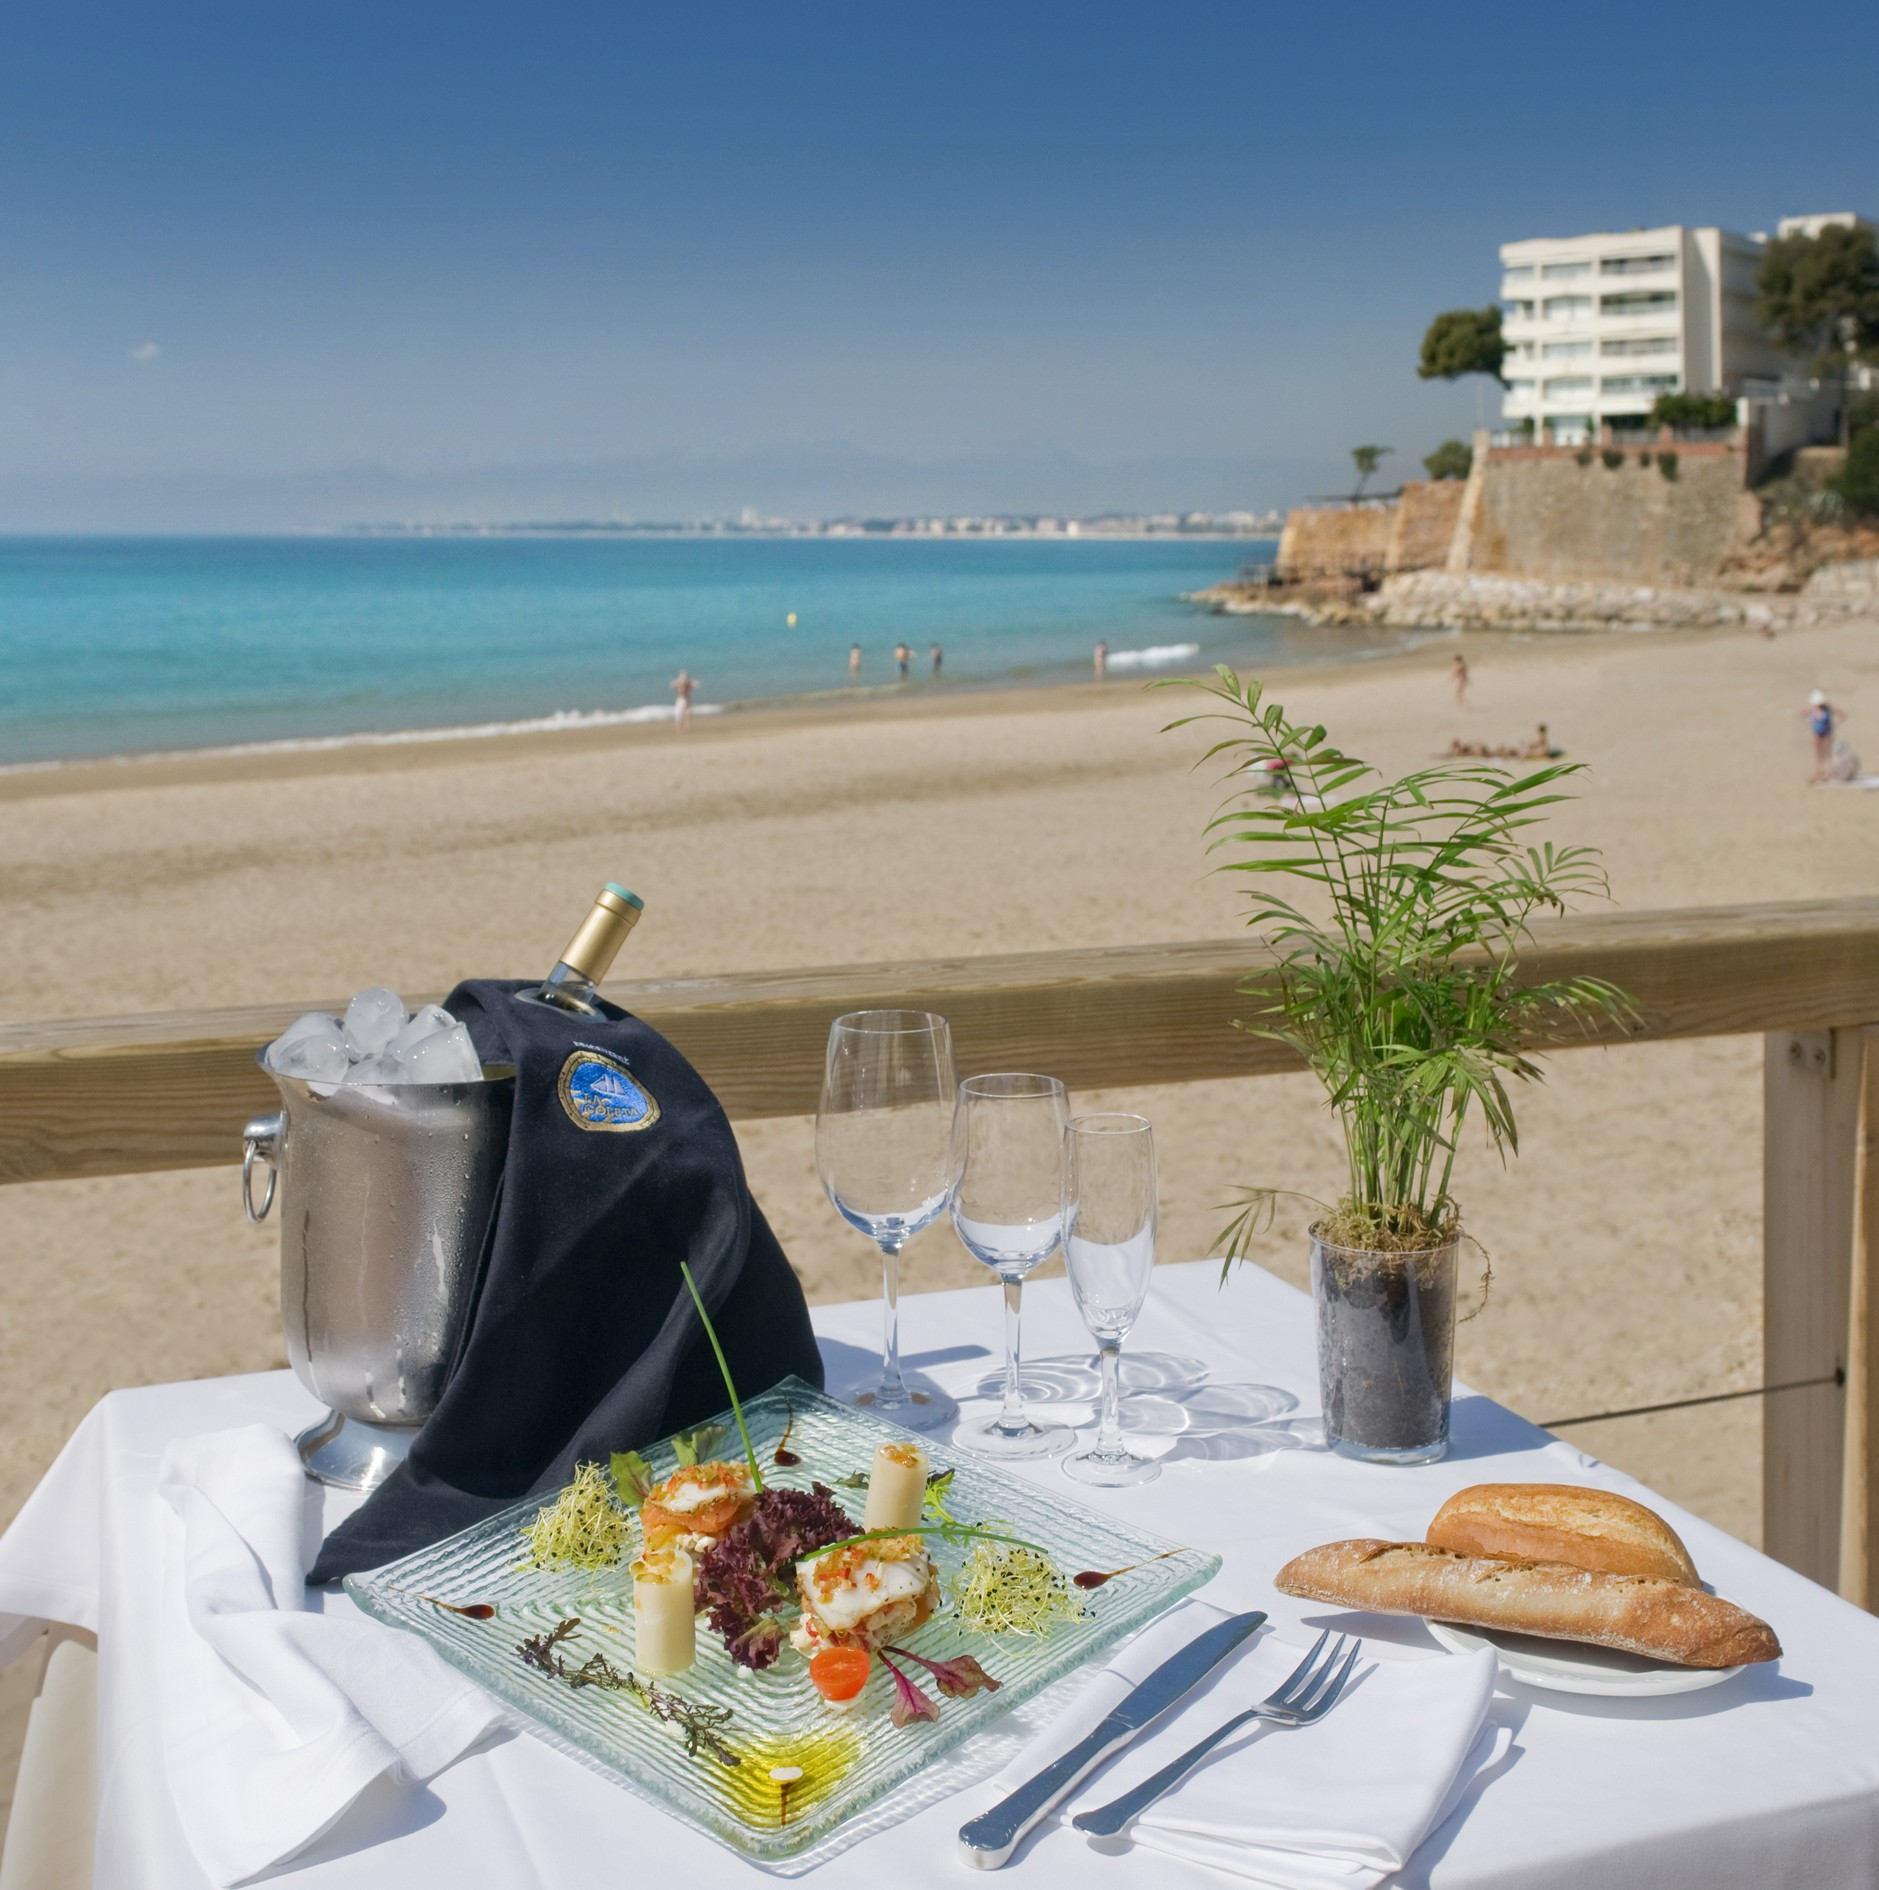 Restaurants in front of the sea on the Costa Dorada